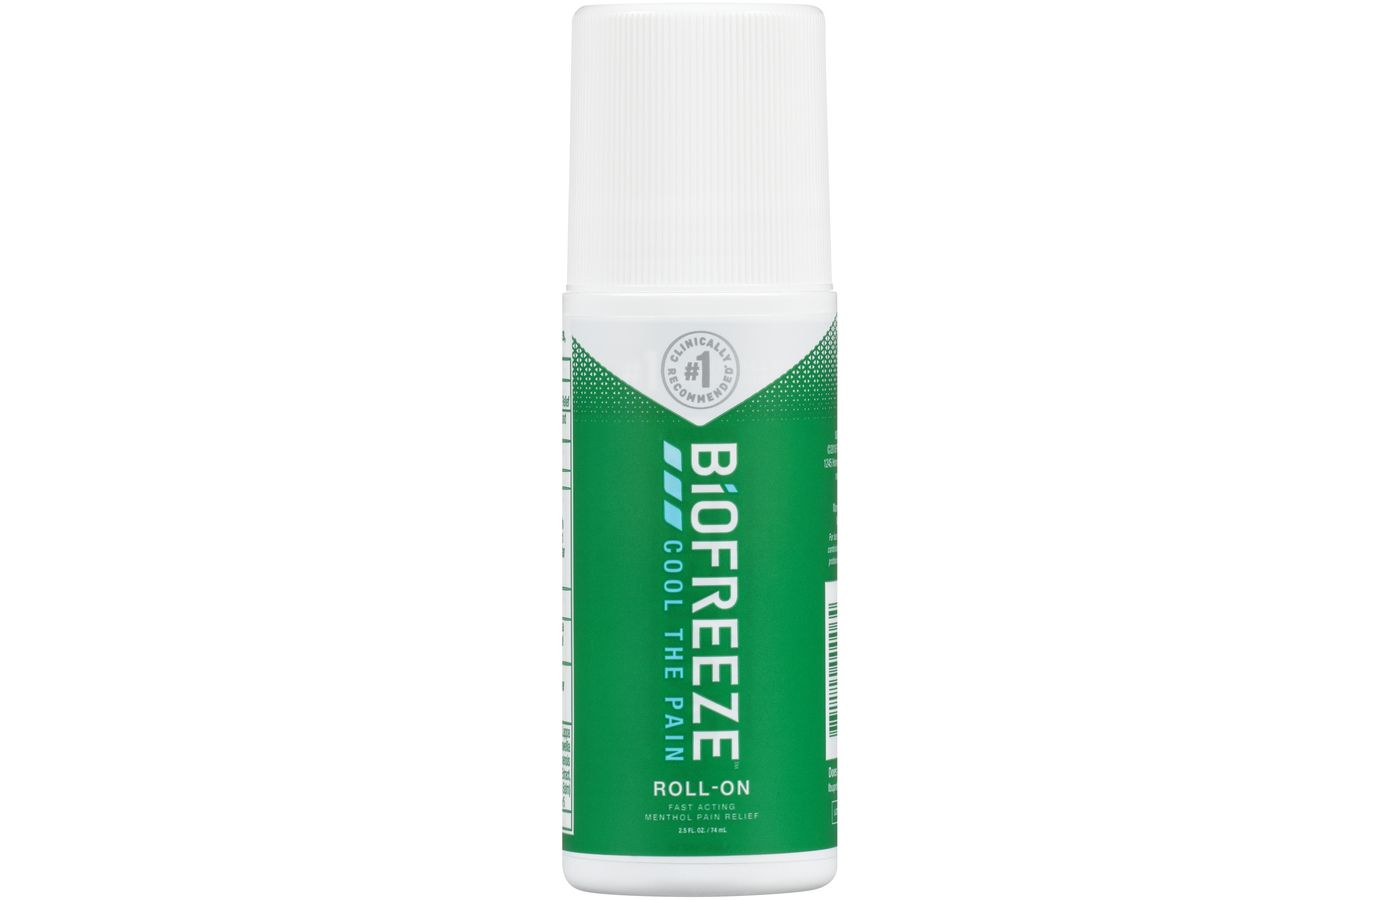 Cramer Biofreeze Roll-On Pain Relieving Gel